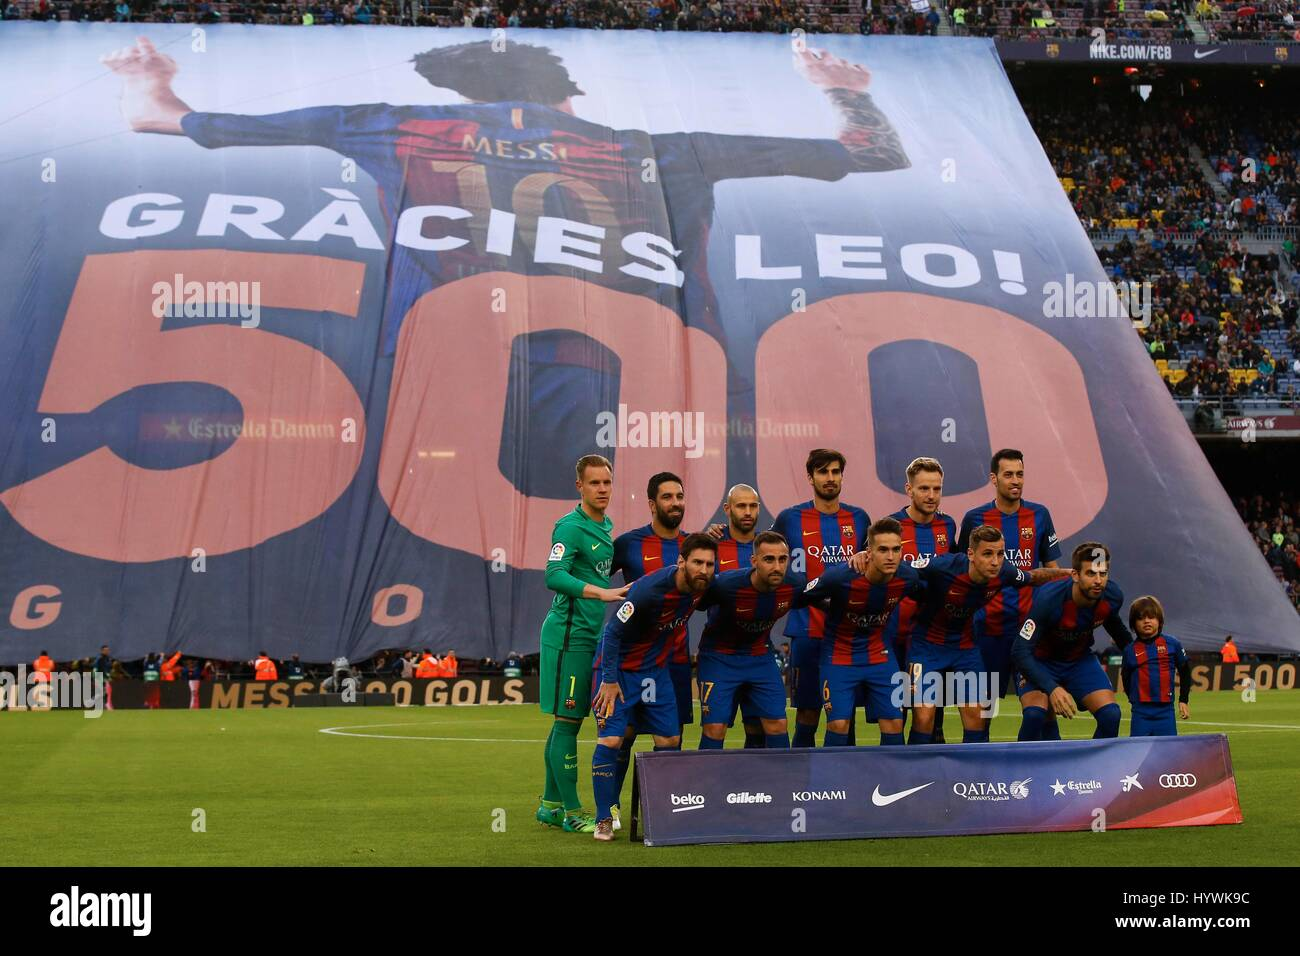 Barcelona, Spain. 26th Apr, 2017. Barcelona's players pose for pictures before the Spanish first division soccer - Stock Image